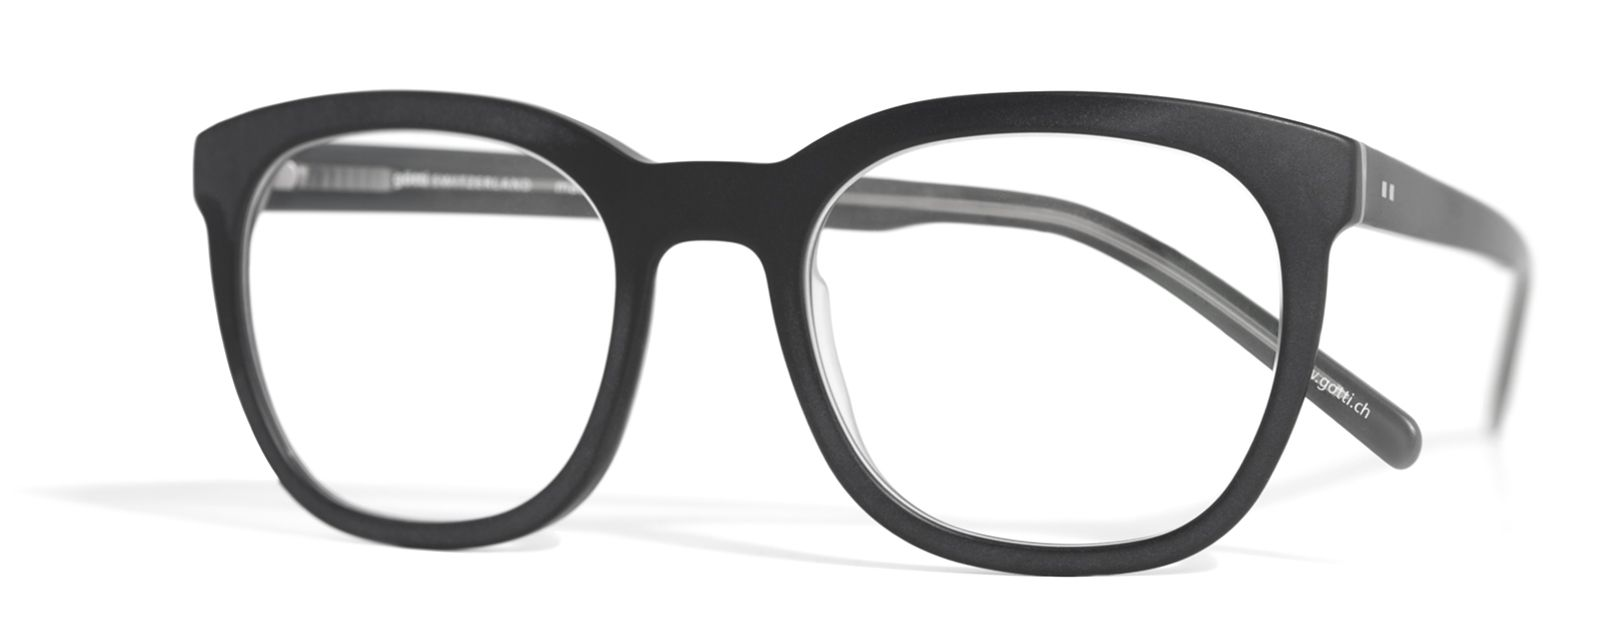 Götti Switzerland ELLIS Titan brille, Randlose brille